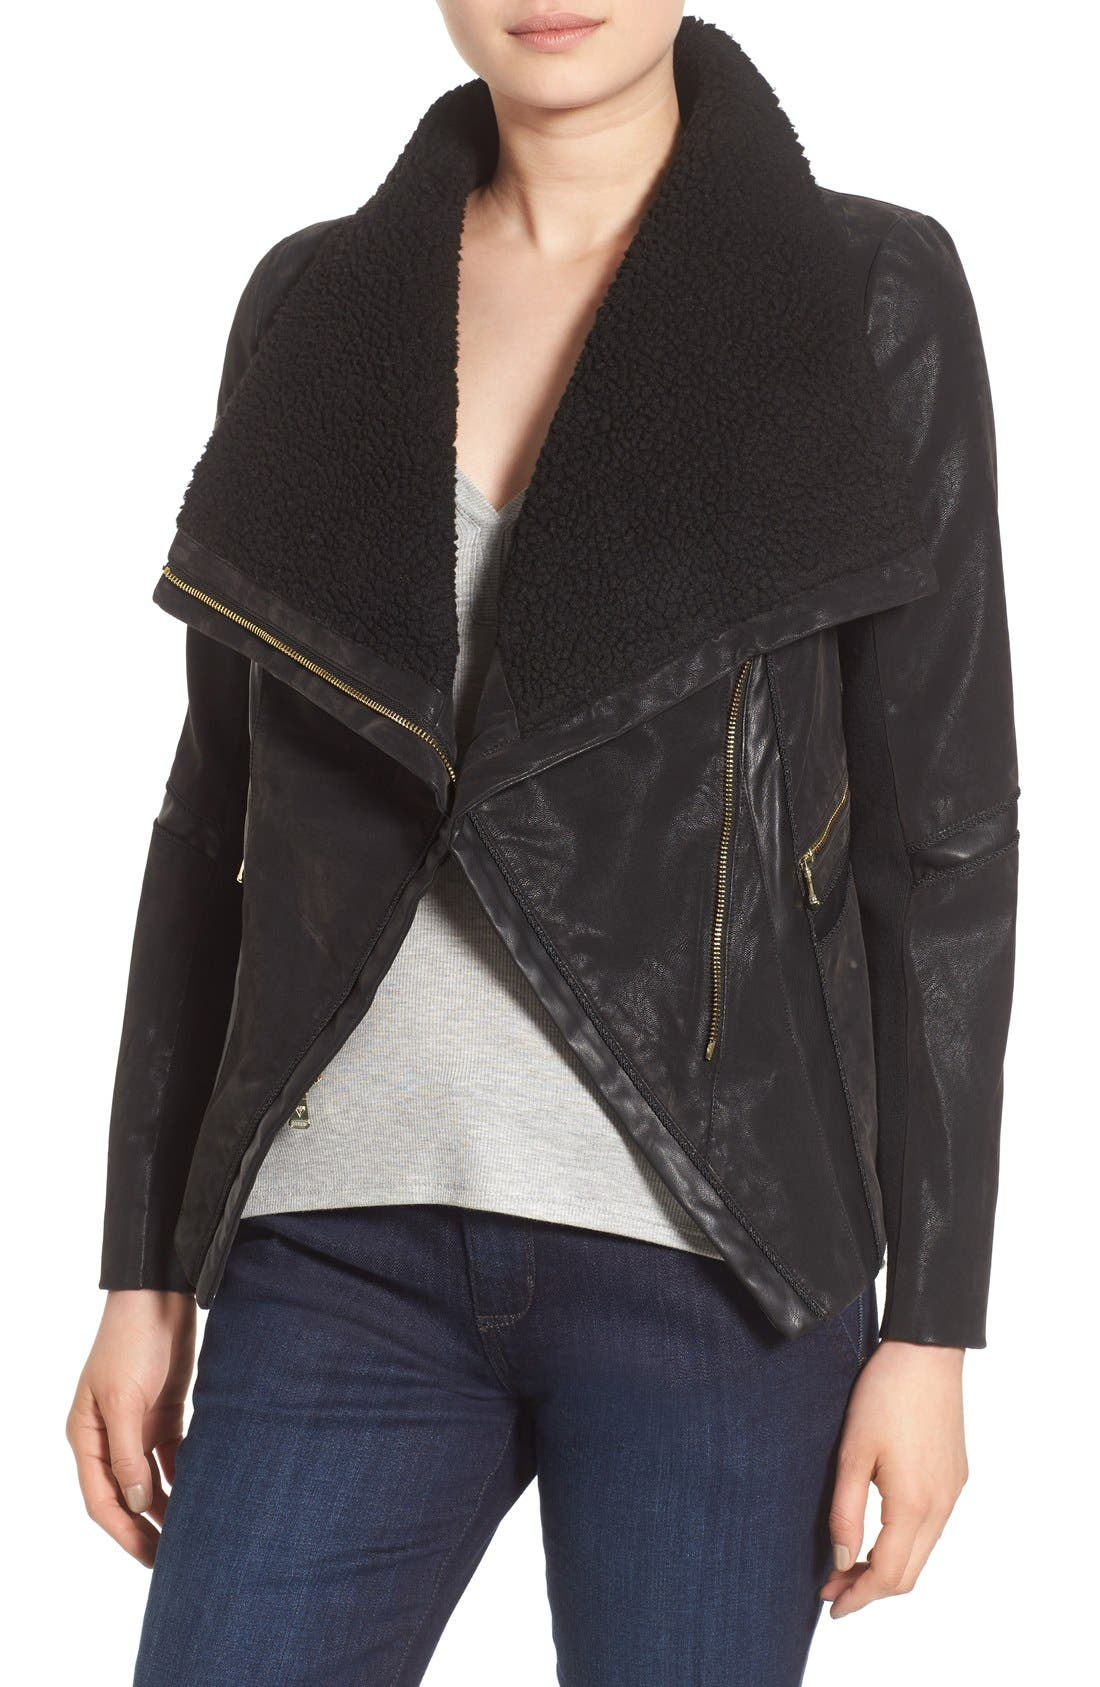 GUESS Faux Leather Moto Jacket with Faux Fur Trim